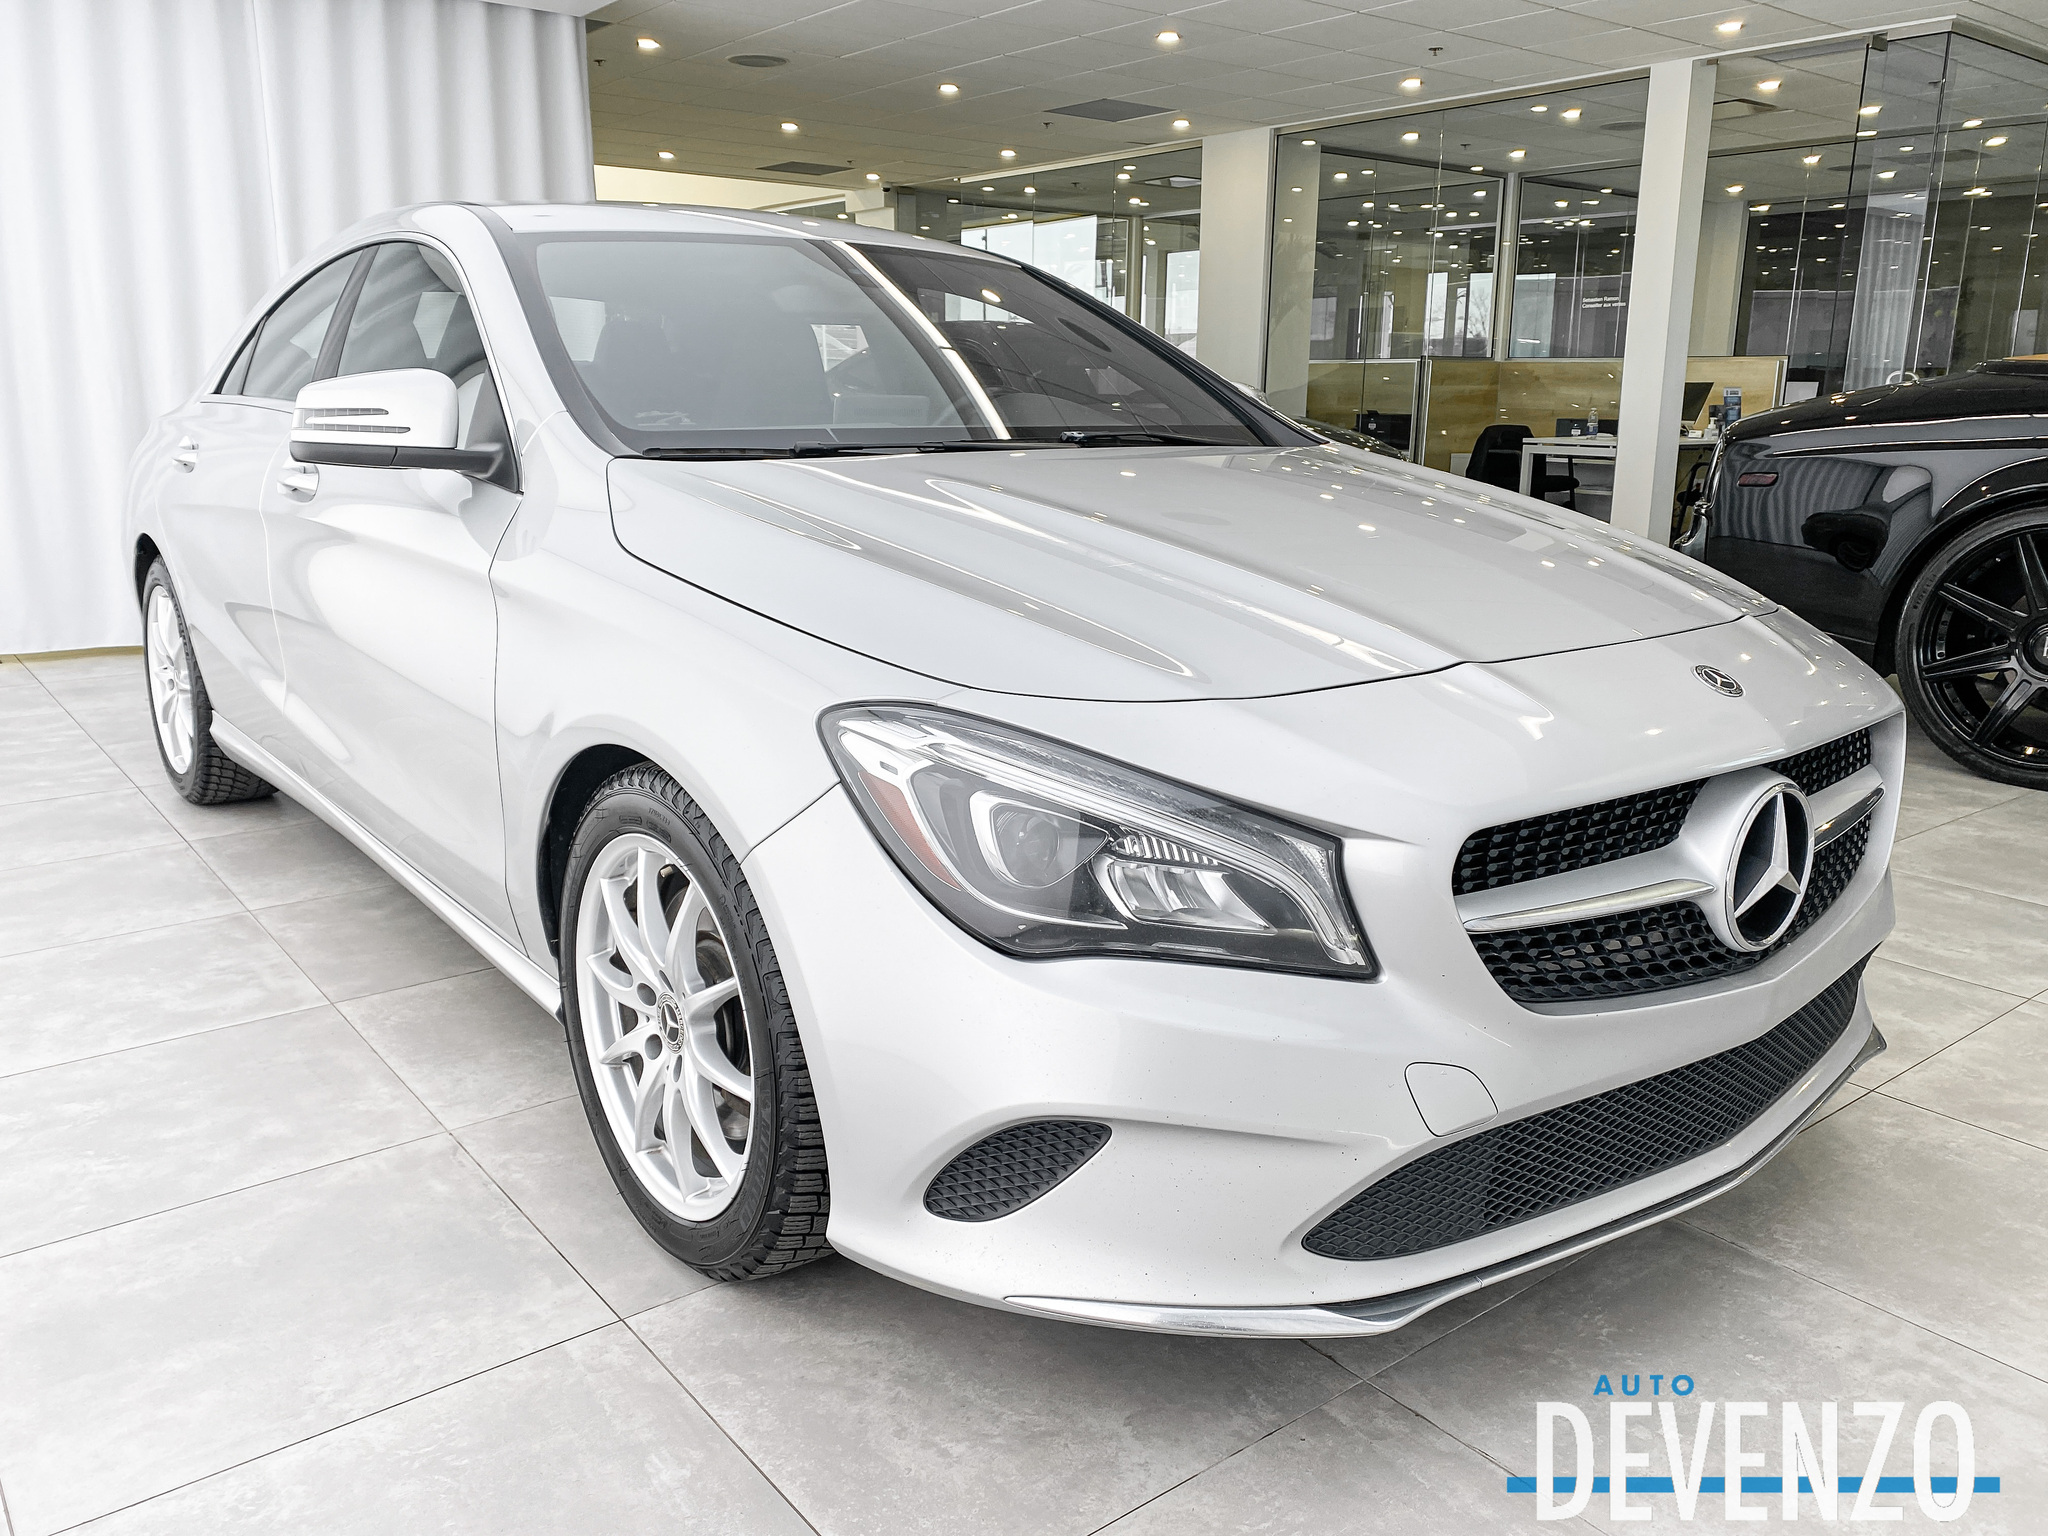 2018 Mercedes-Benz CLA-Class CLA250 4MATIC Coupe CUIR / CAMERA DE RECUL complet